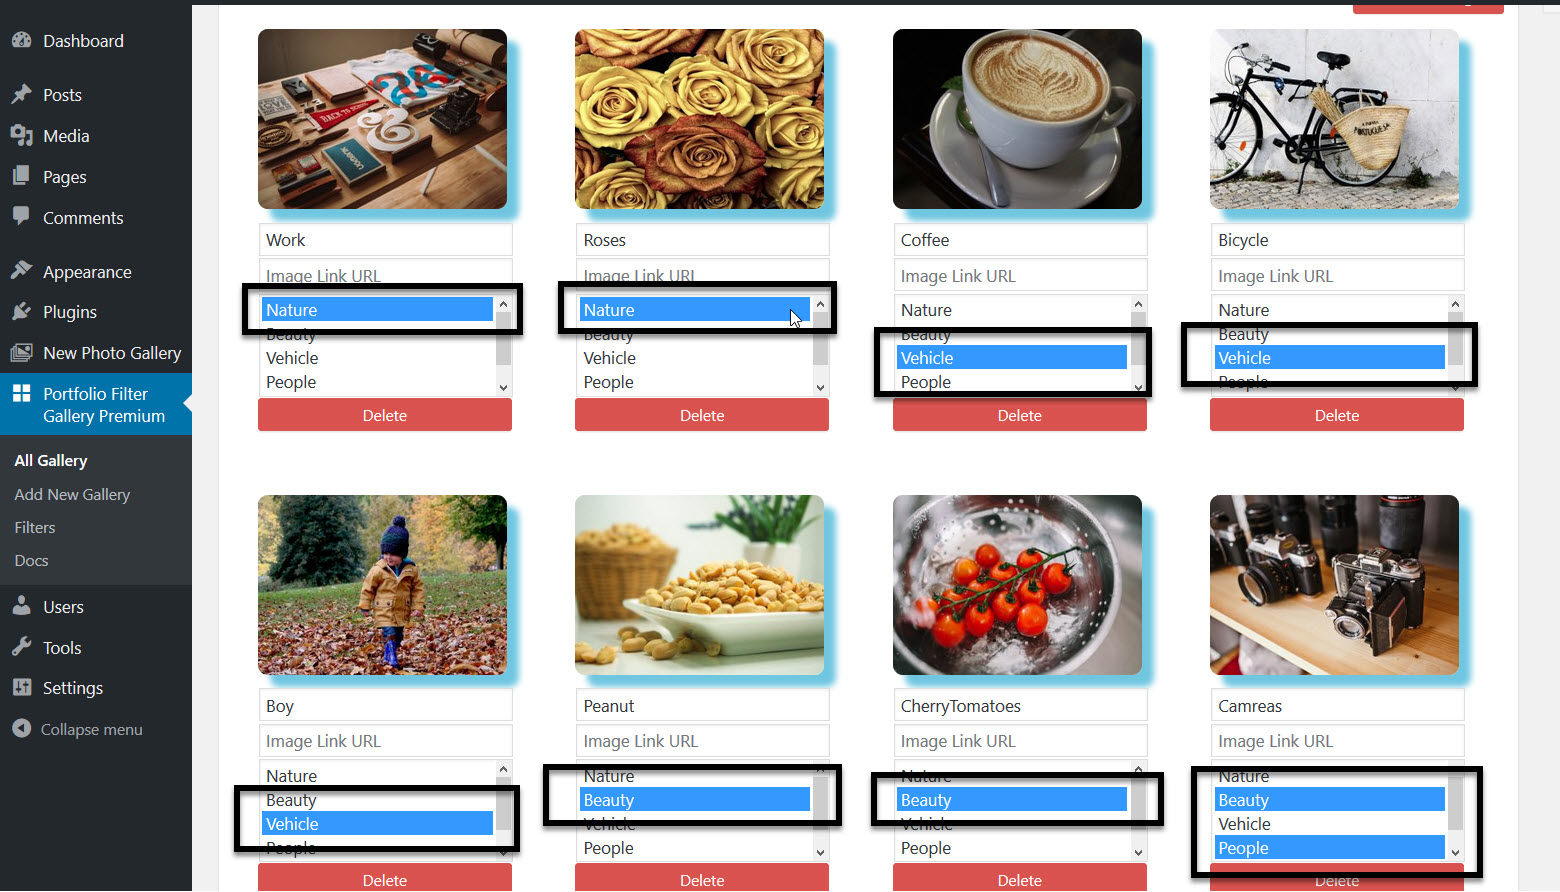 Adding Filters with Images Into Portfolio Filter Gallery